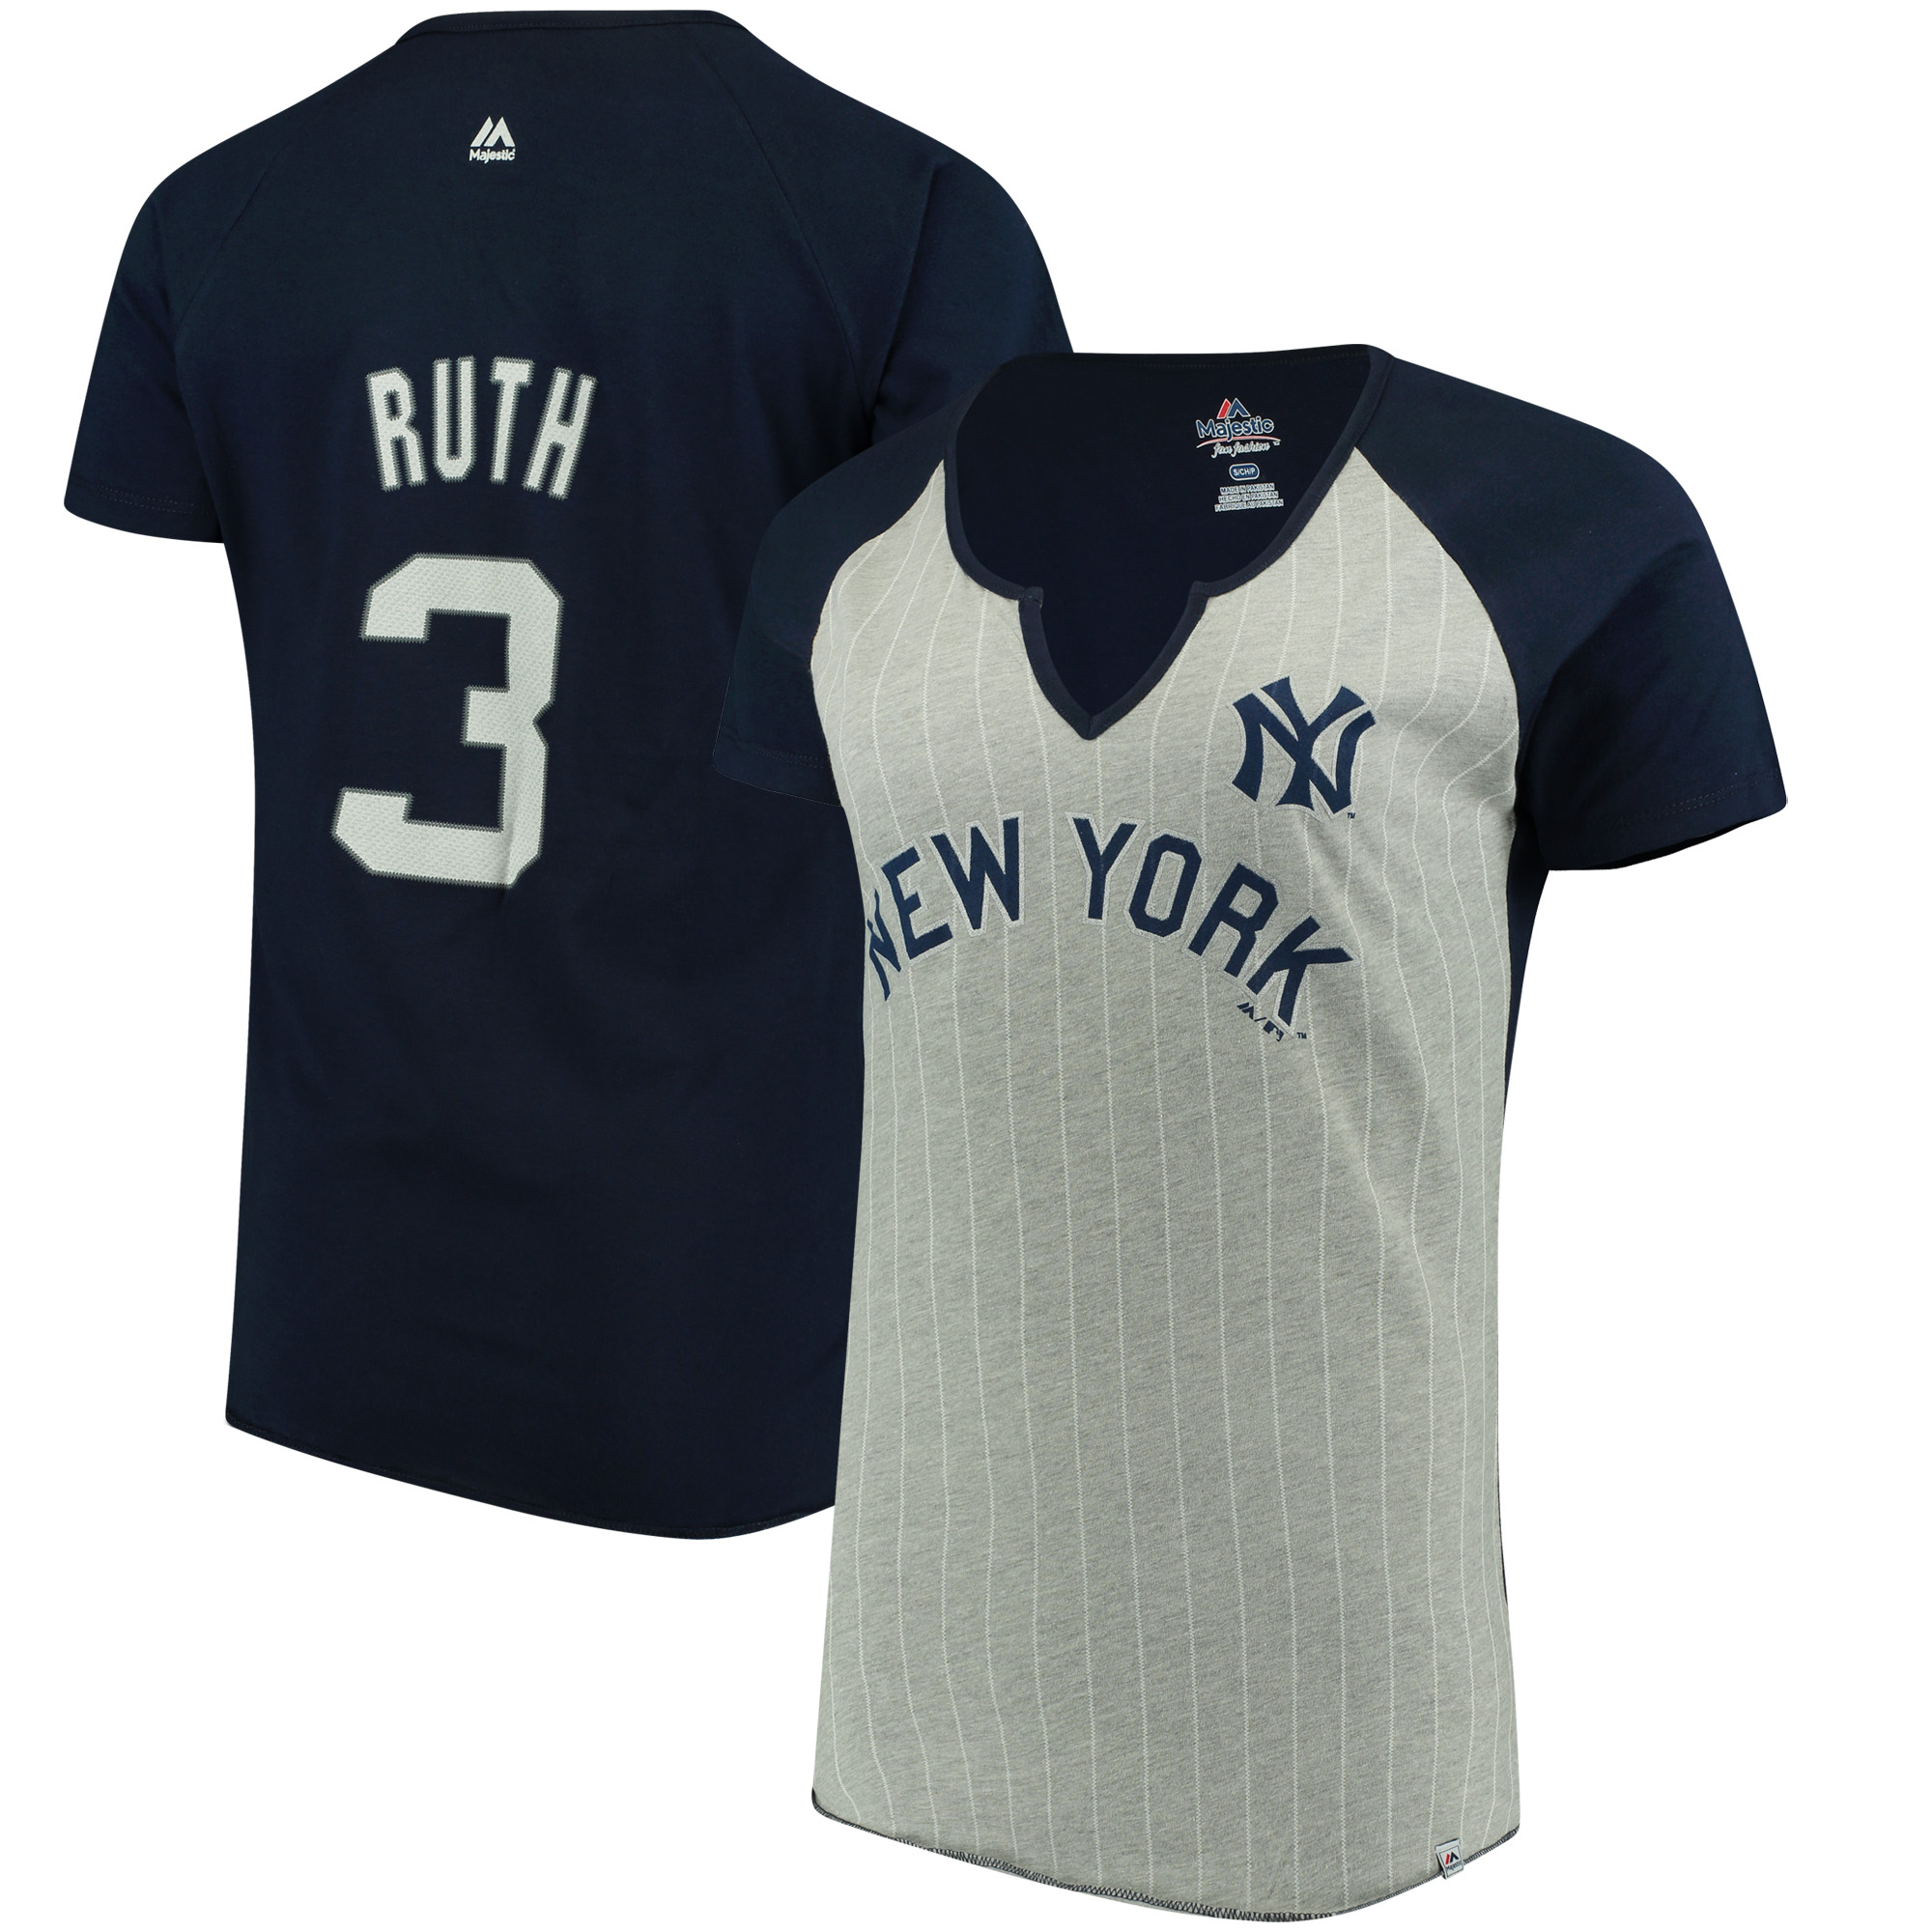 Women's Majestic Babe Ruth Gray New York Yankees Cooperstown Collection From the Stretch Name & Number T-Shirt